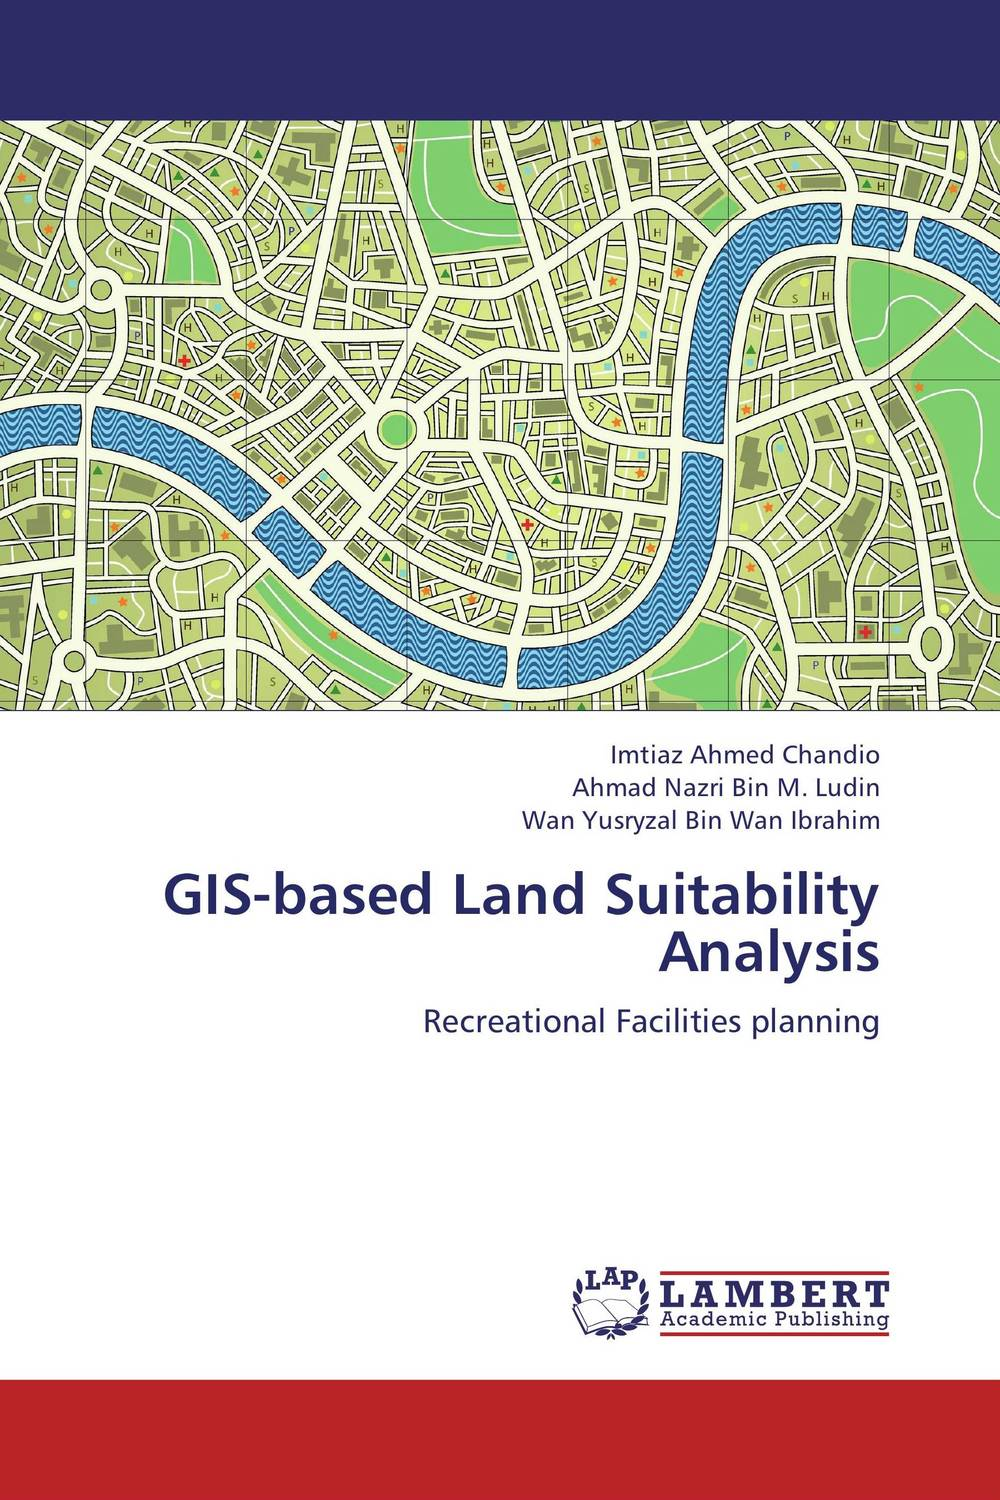 GIS-based Land Suitability Analysis